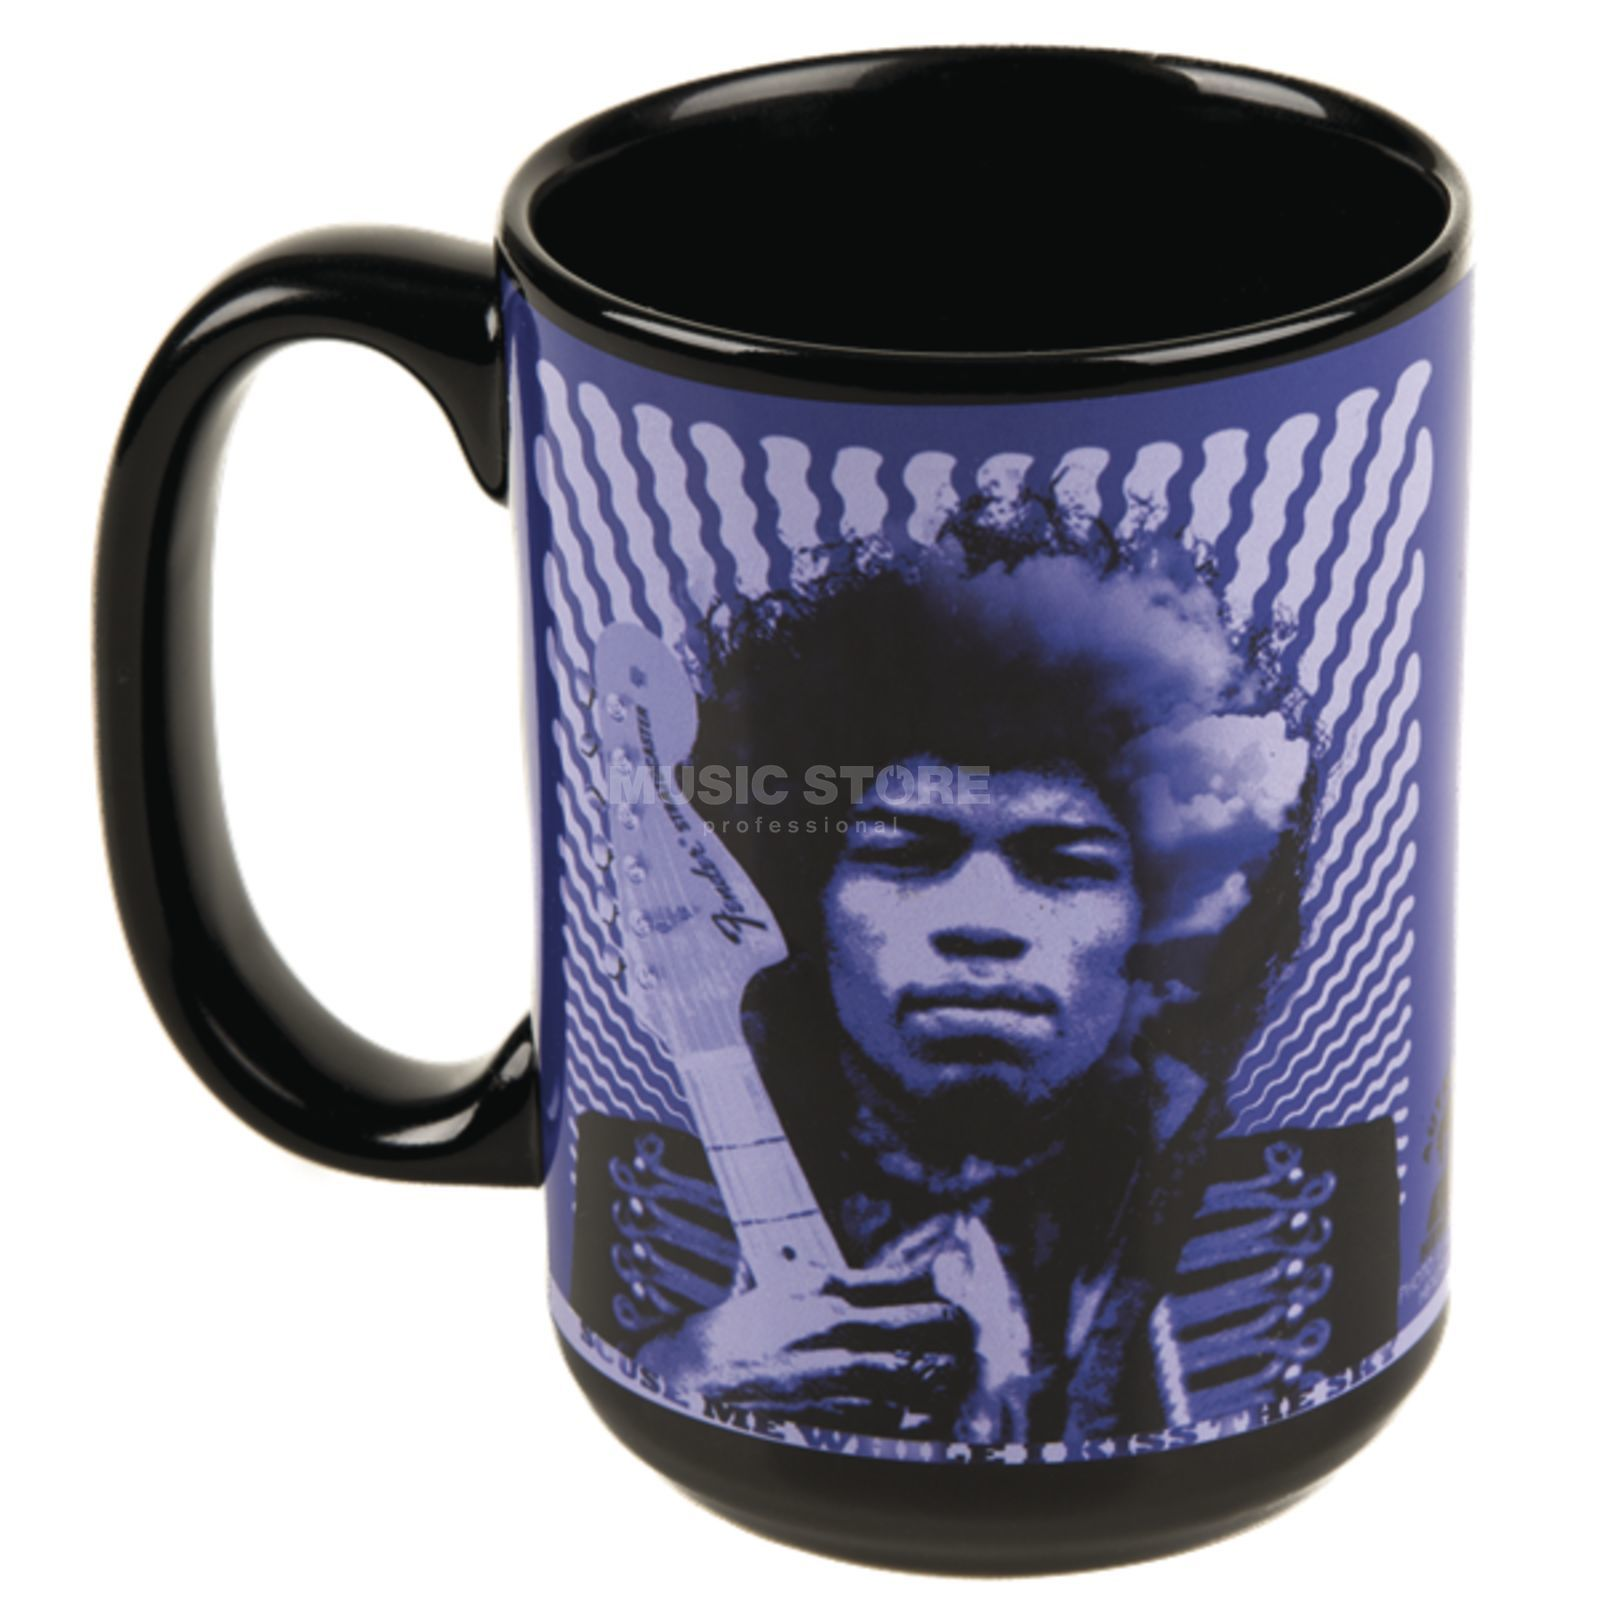 Fender Jimi Hendrix Kiss the Sky Mug Productafbeelding